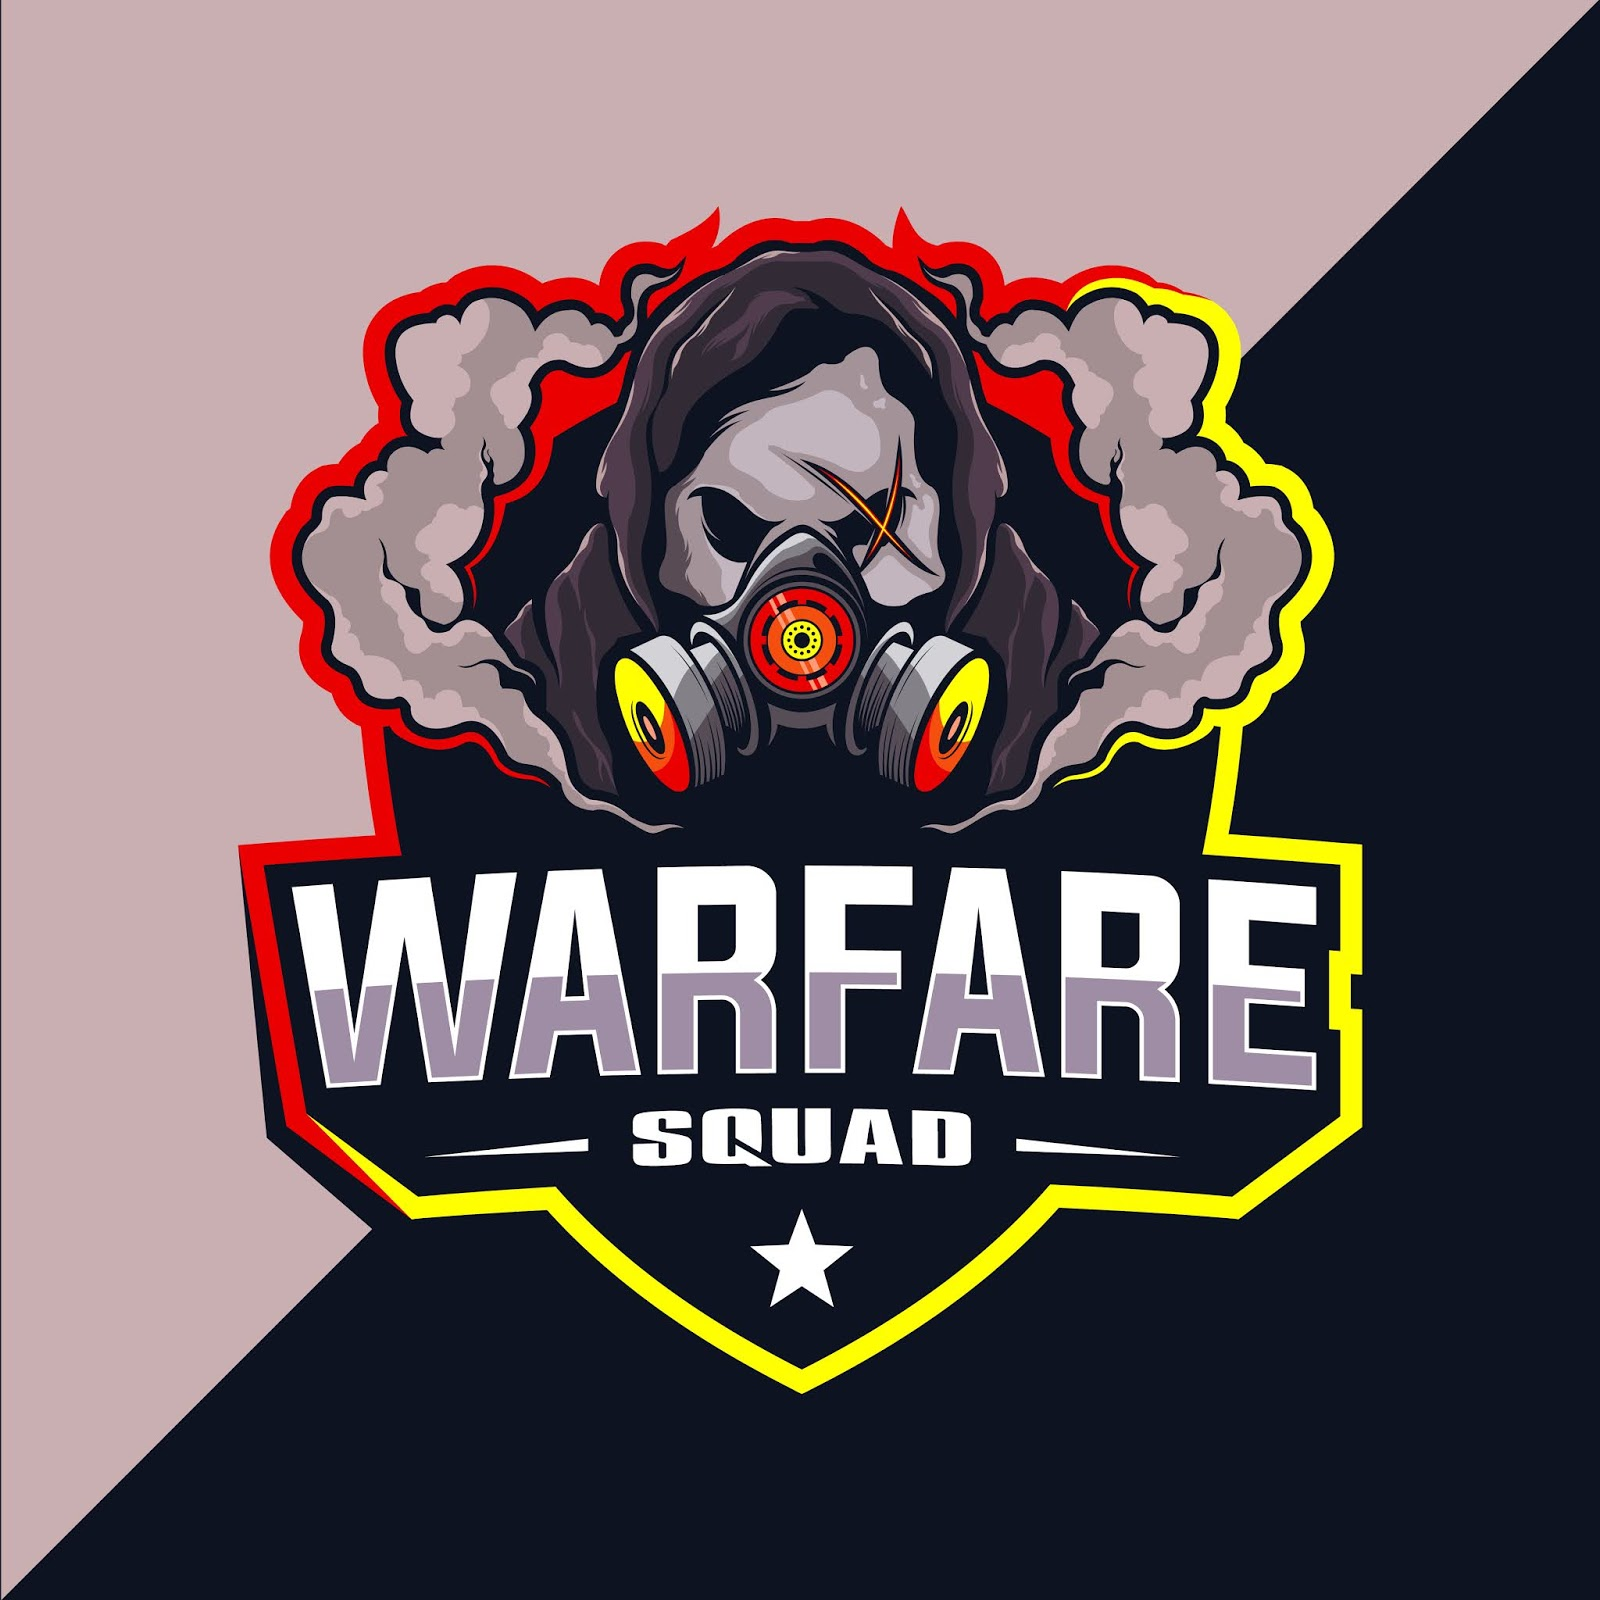 Warfare Squad Esport Logo Free Download Vector CDR, AI, EPS and PNG Formats